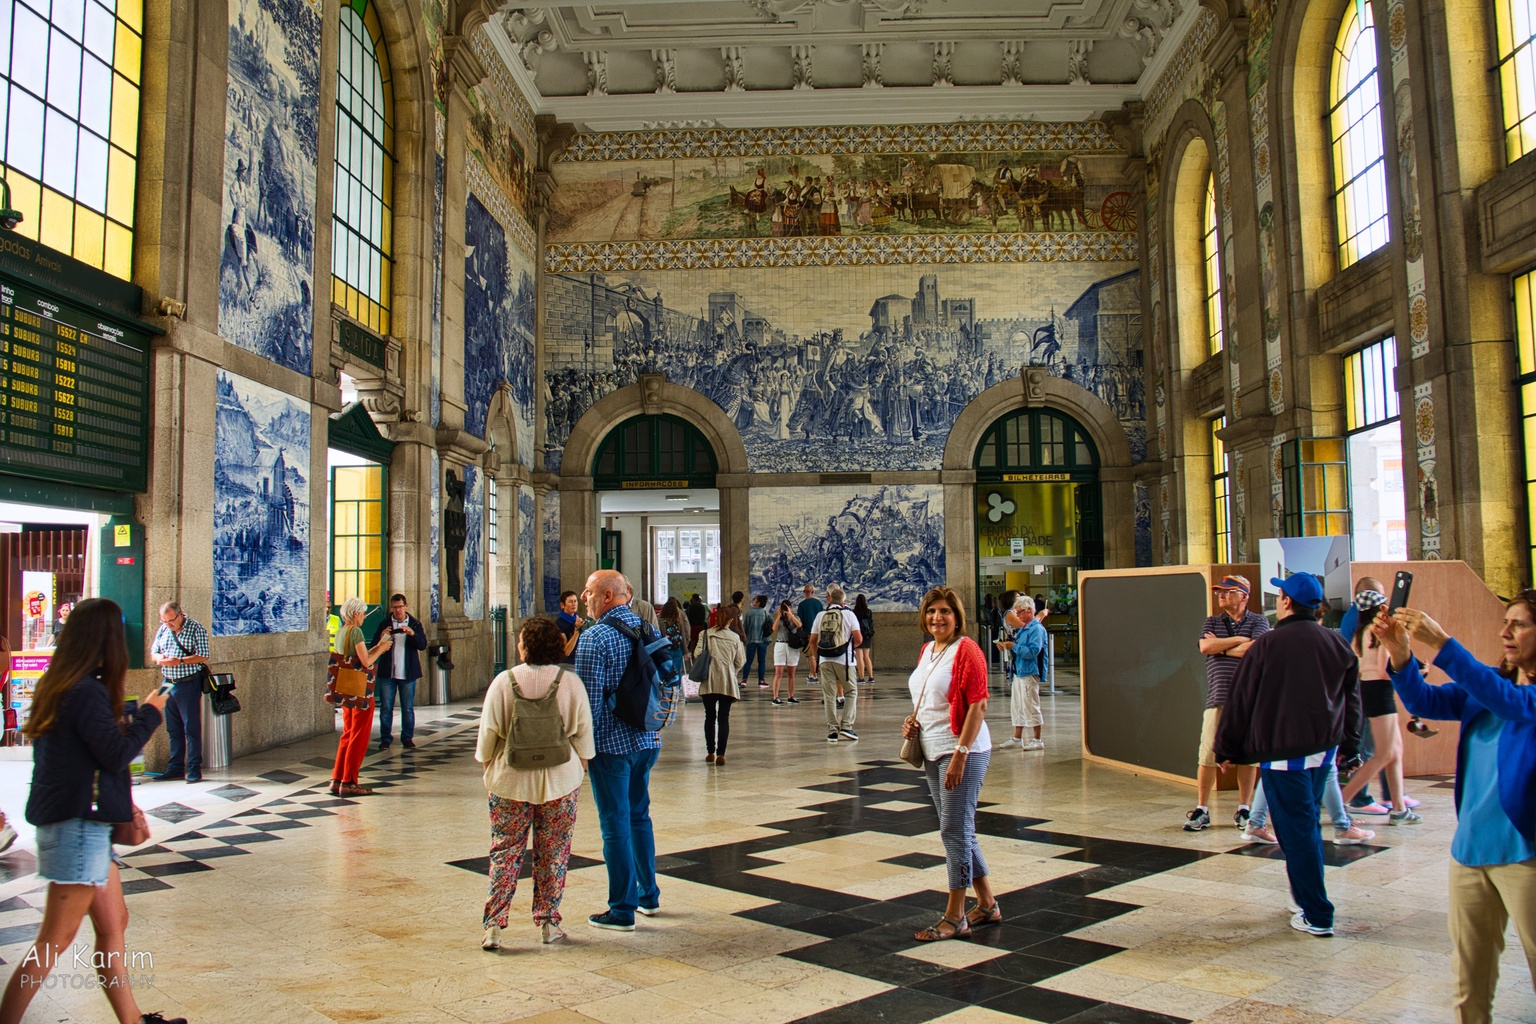 Porto Original train station of Porto, still in use; with beautiful tiled images